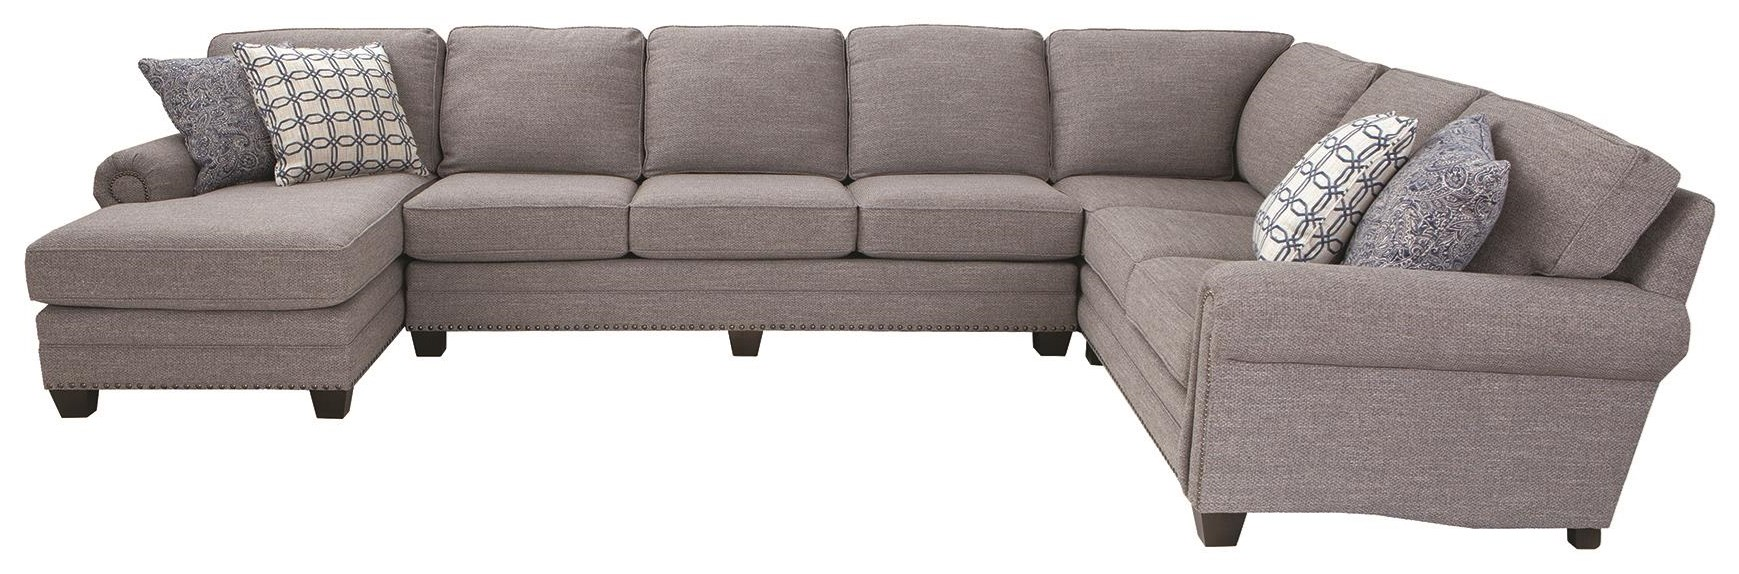 253 3 Piece Sectional by Smith Brothers at Darvin Furniture